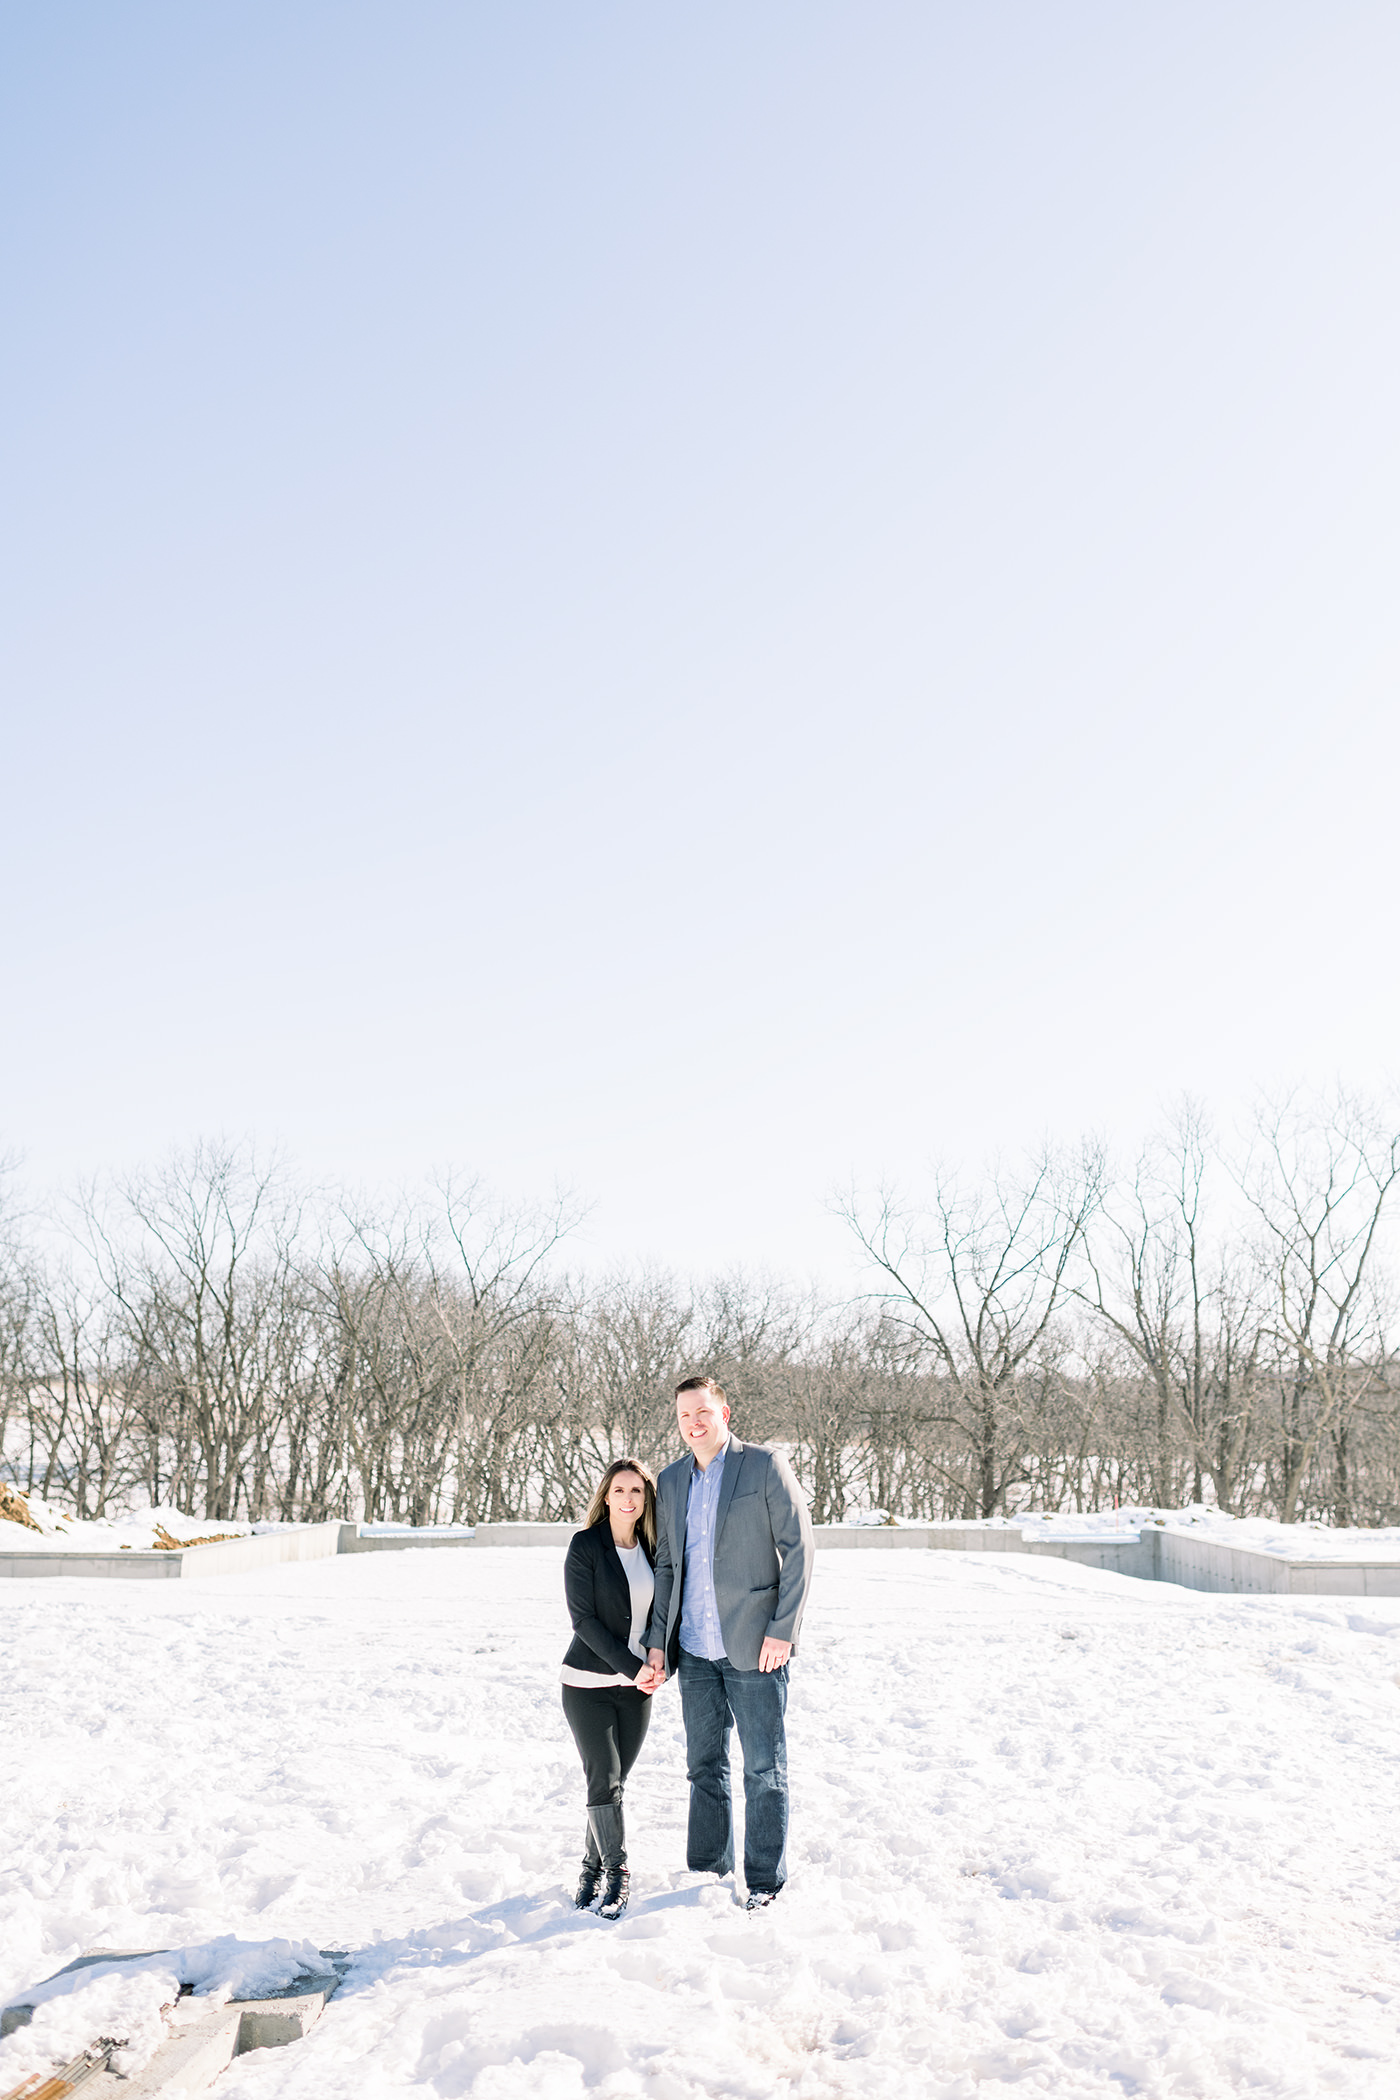 Madison, WI Area Wedding Venue - The Eloise